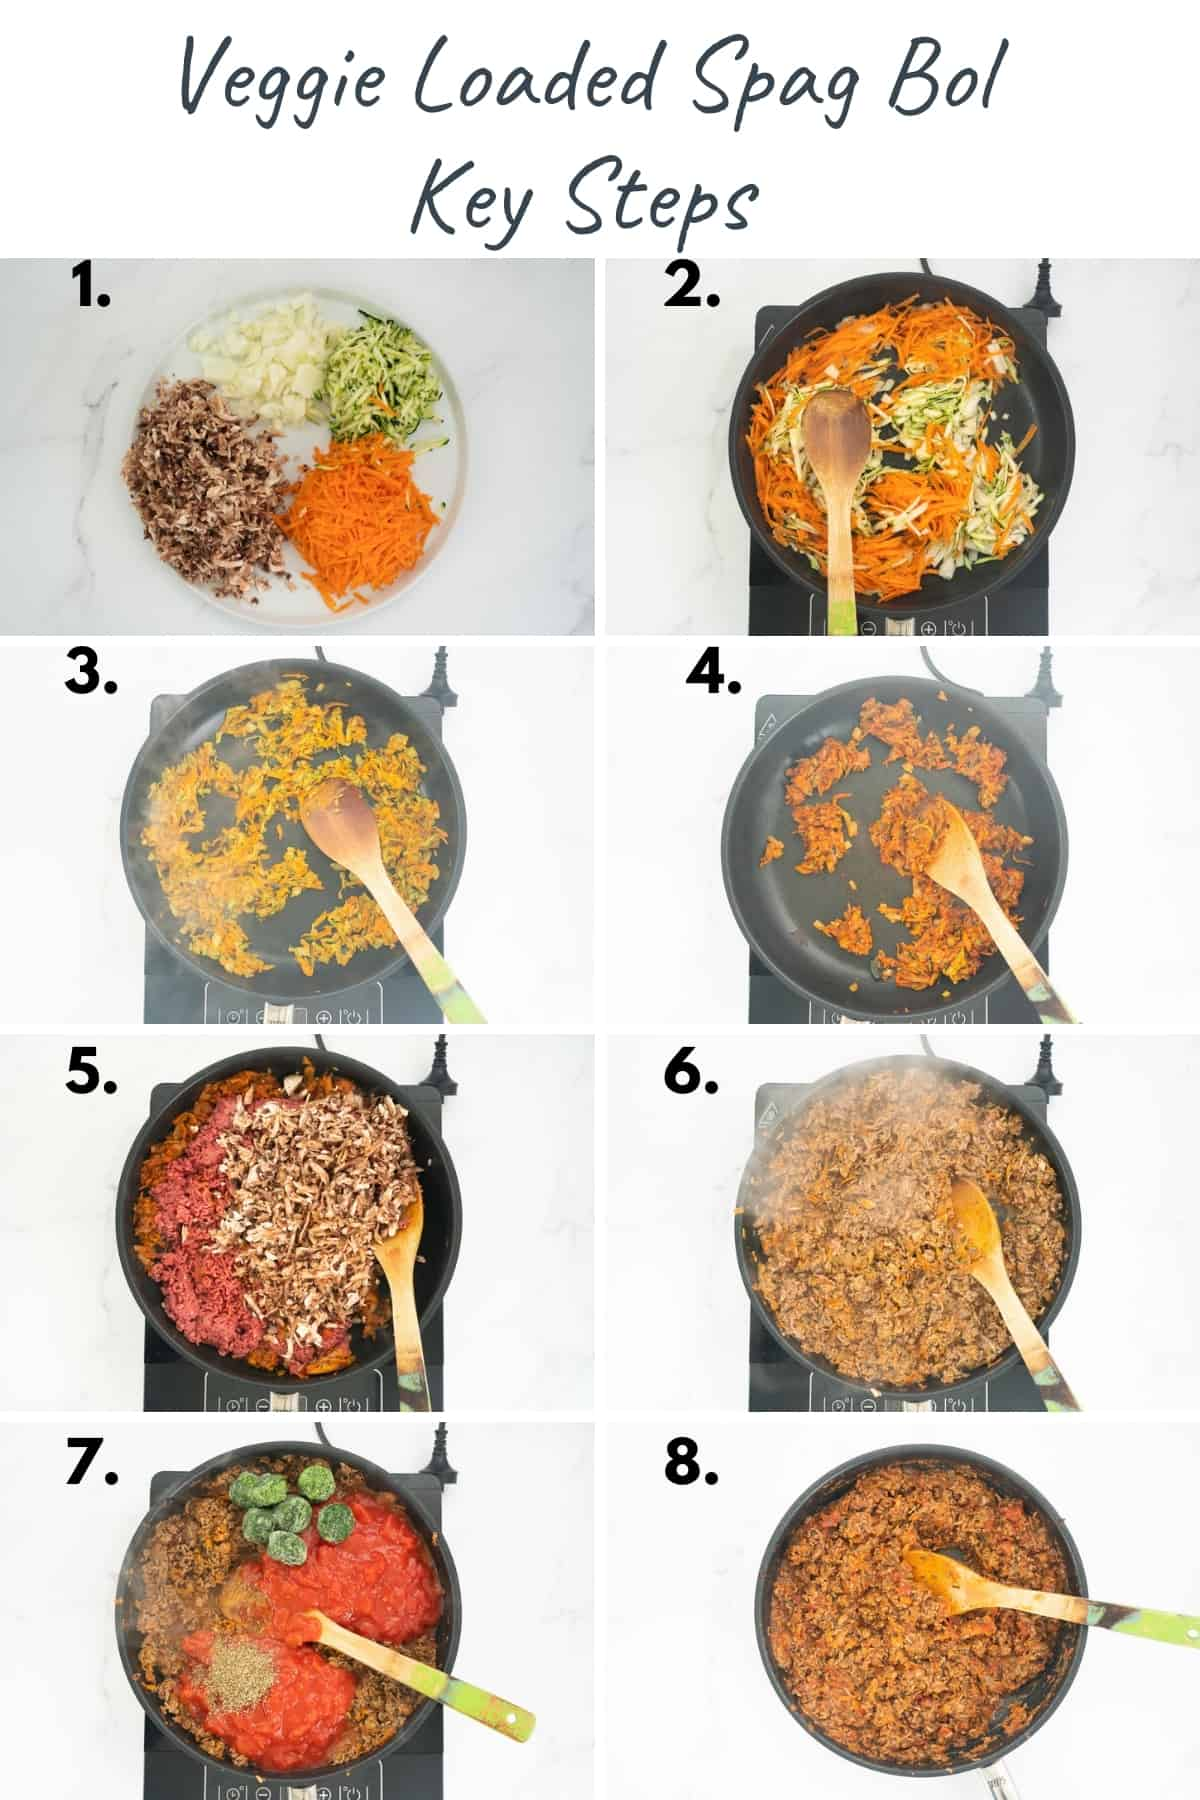 8 photo collage showing the key steps to making a veggie loaded spag bol sauce